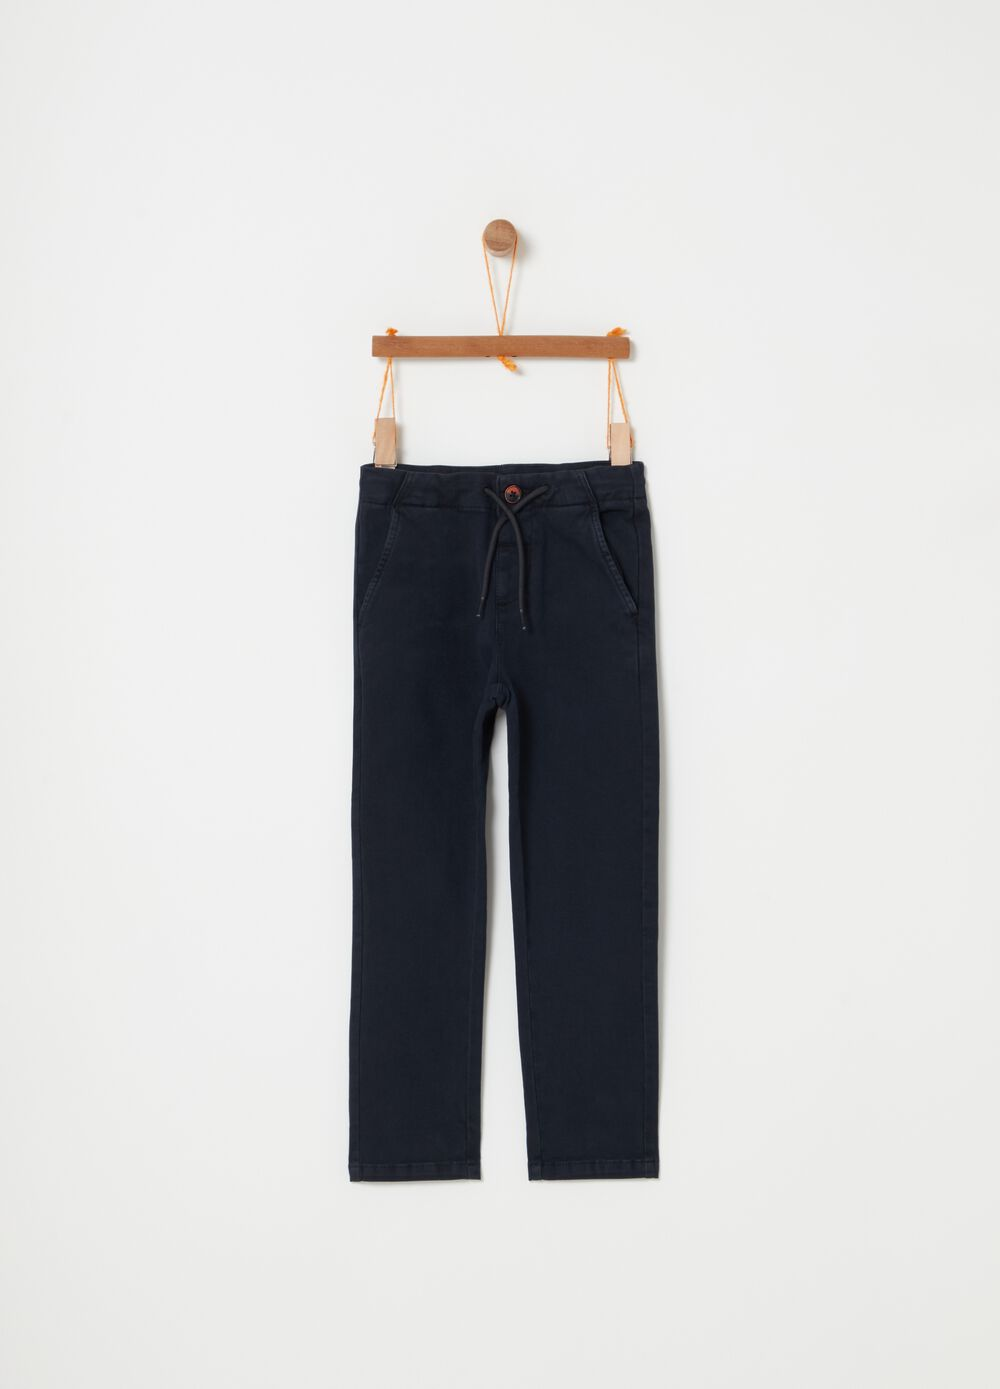 Chino trousers with drawstring and pockets